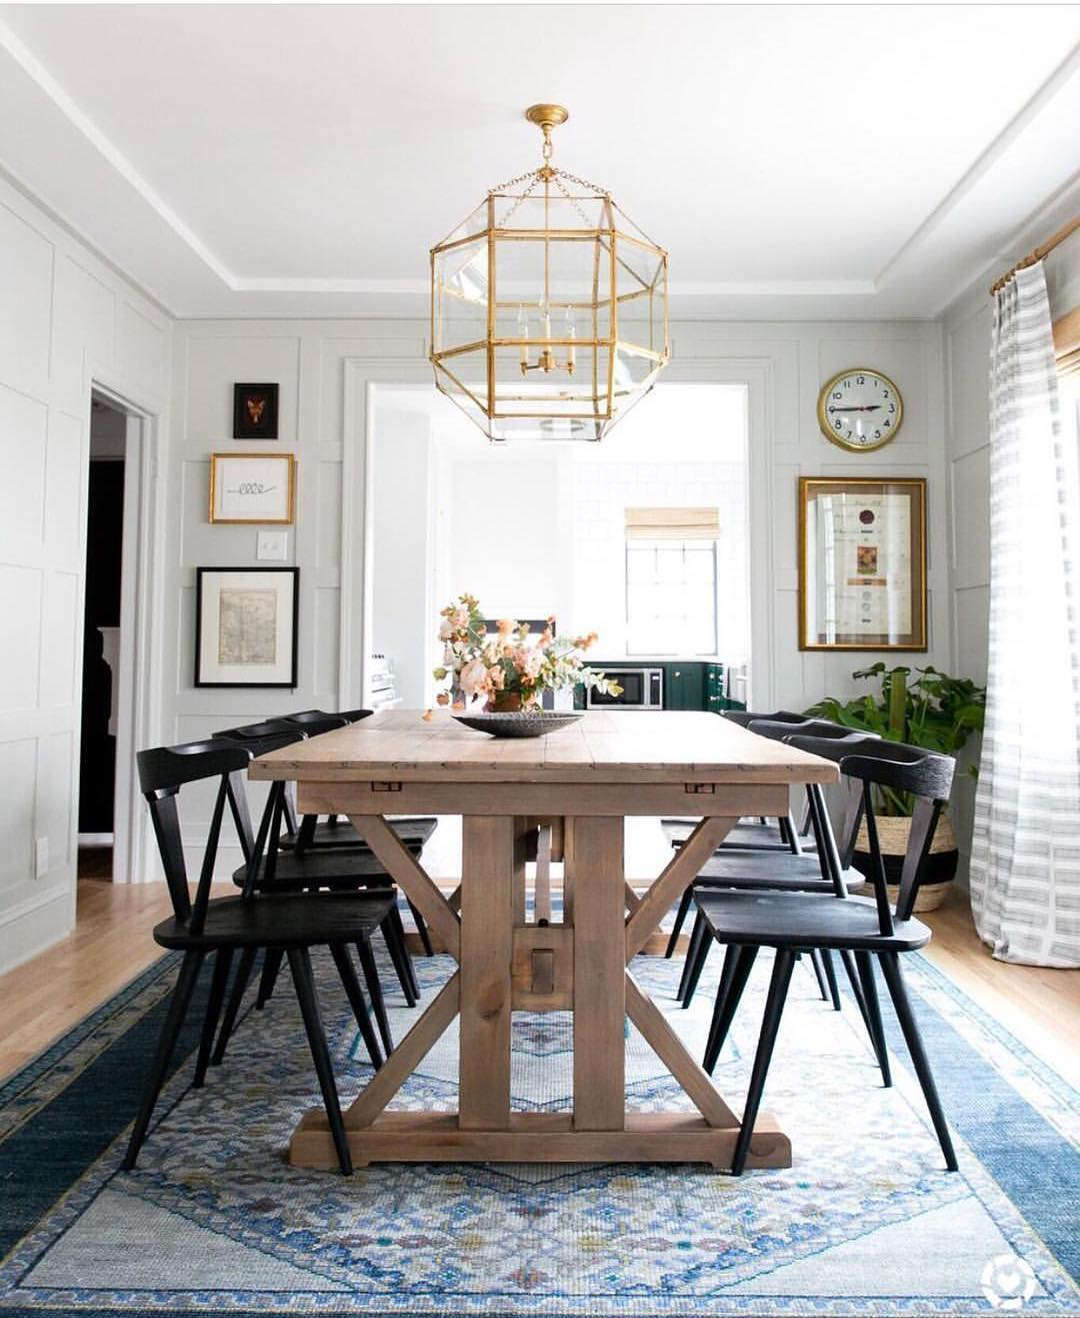 Where do you lookshop for dinning room tables? Were lesshellip